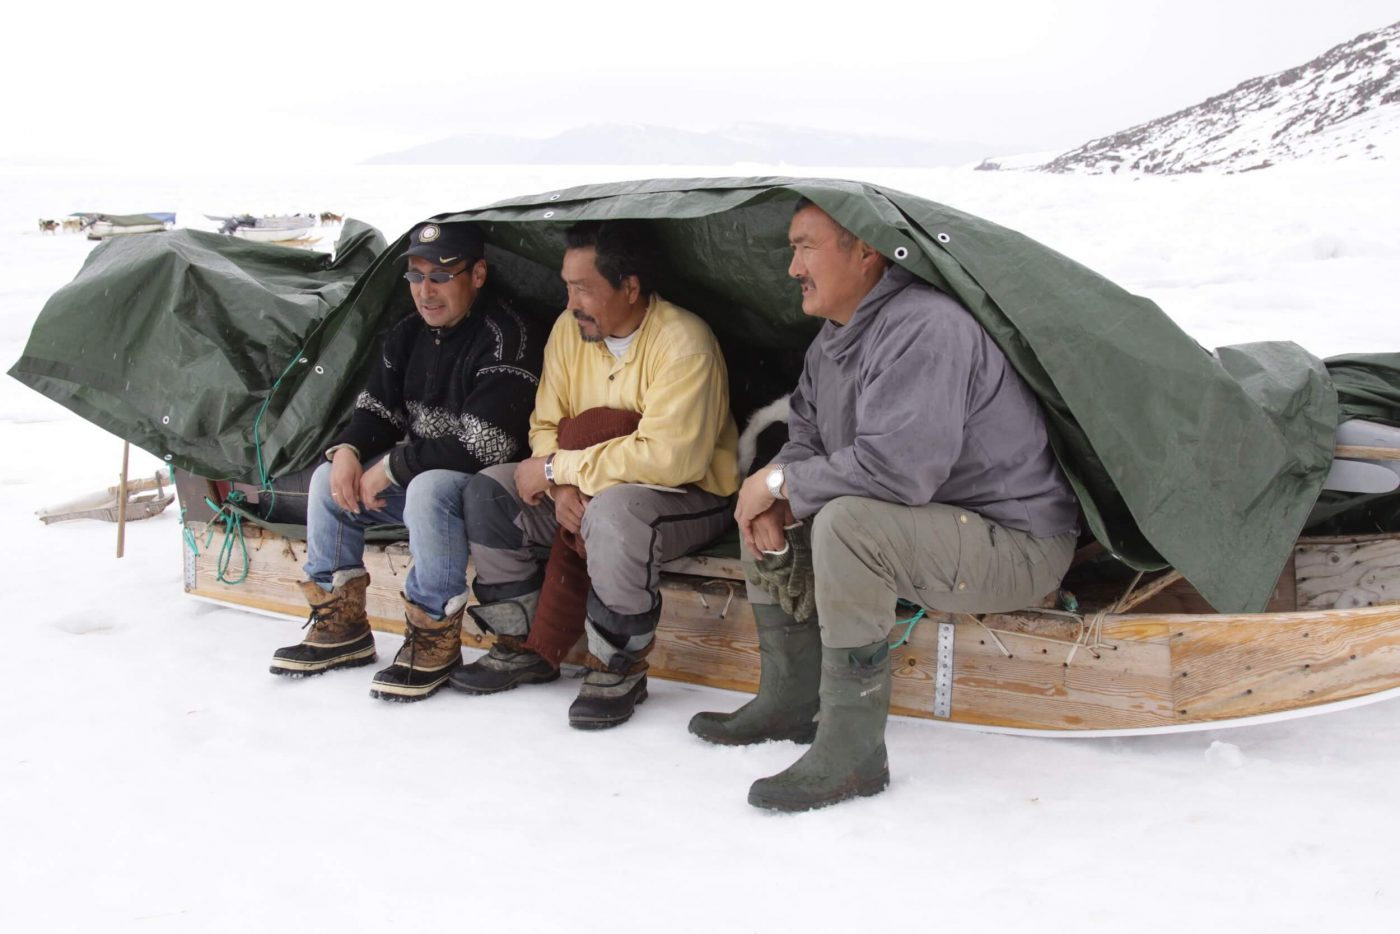 Three local men sitting on a sleigh under a tarpaulin in Qaanaaq, North Greenland. Photo by Nunataq Atsuk Travel